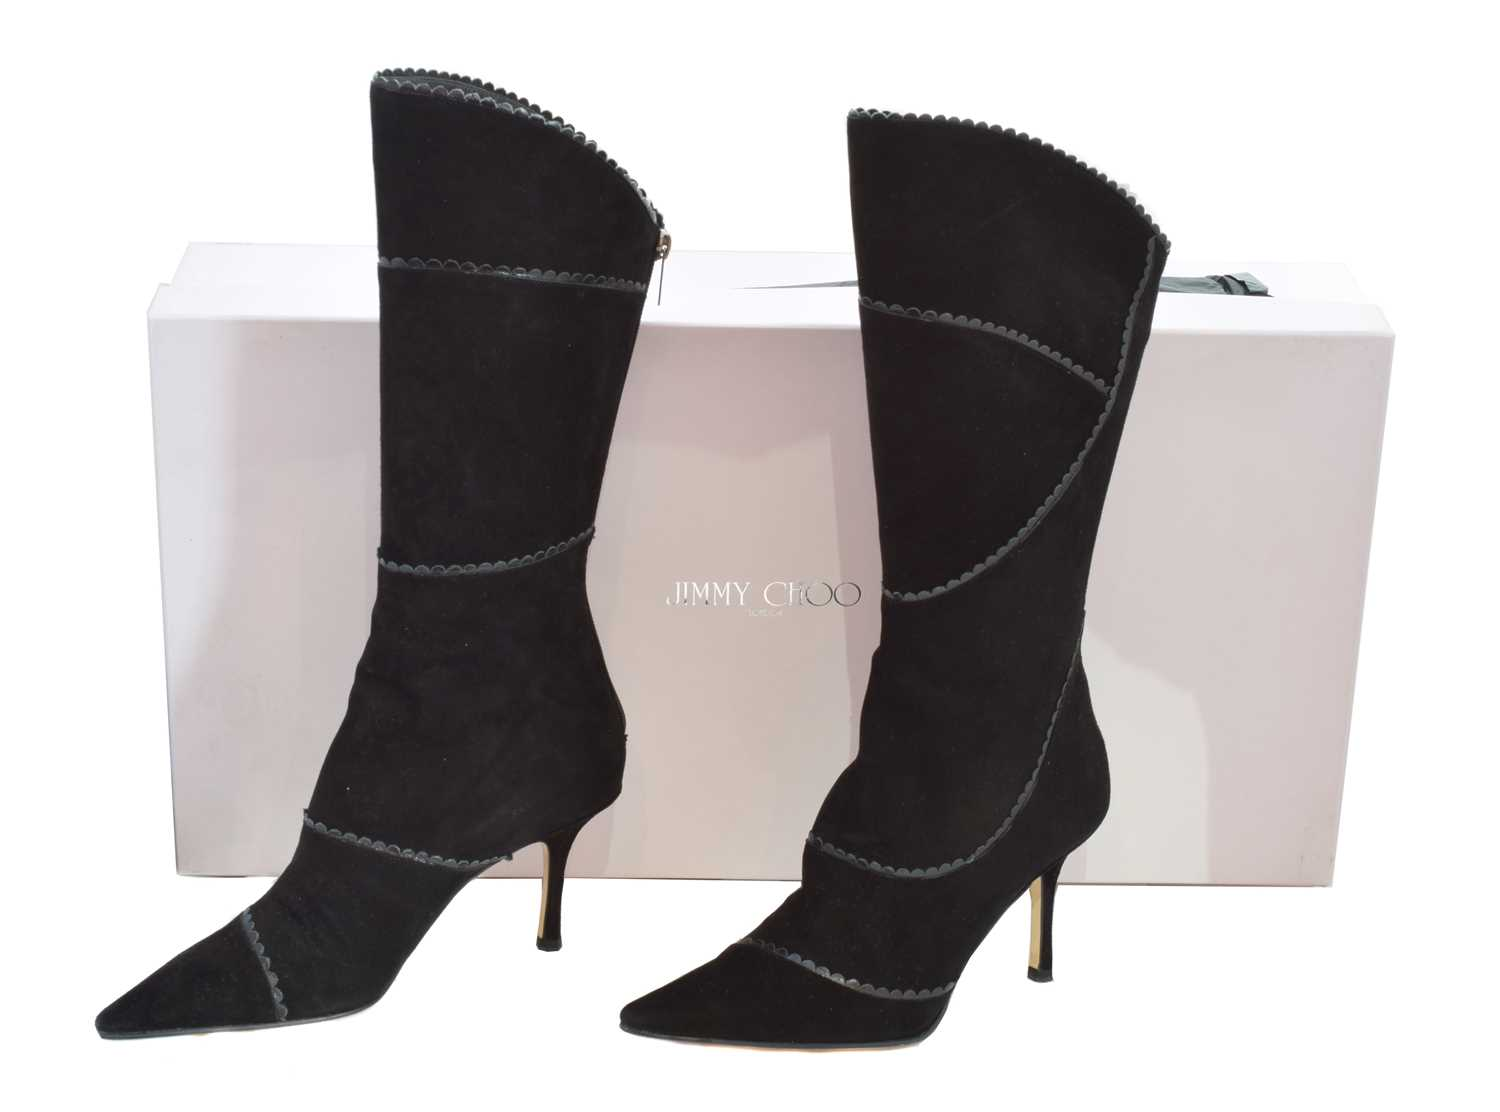 Lot 135 - A pair of Jimmy Choo heeled boots